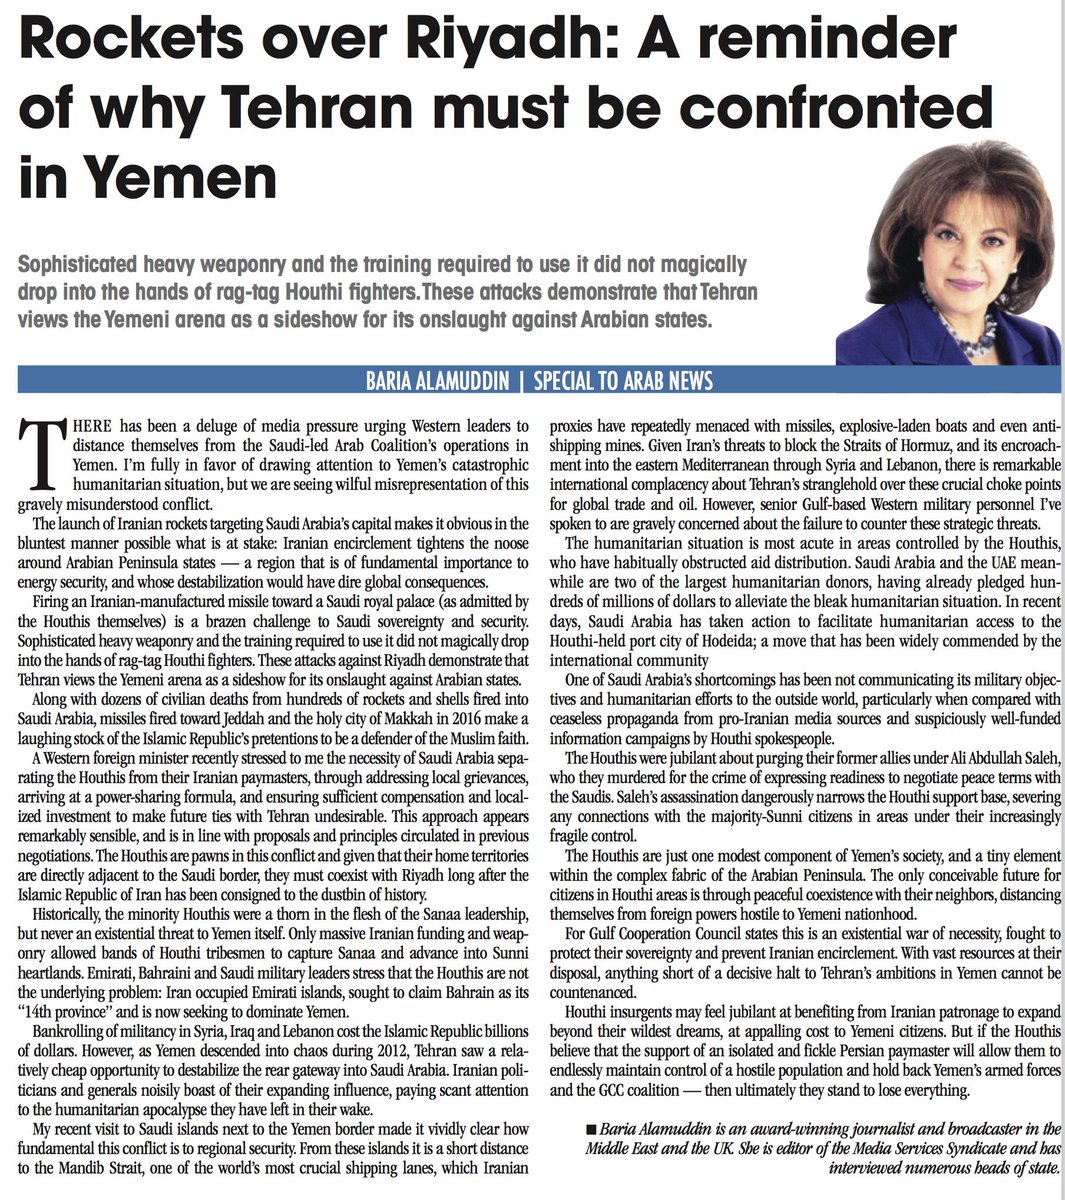 OP-ED: Missiles fired toward #Jeddah and the holy city of #Makkah in 2016 make a laughing stock of the #Islamic Republic's pretentions to be a defender of the #Muslim faith, writes Baria Alamuddin https://t.co/IO55leSZUb